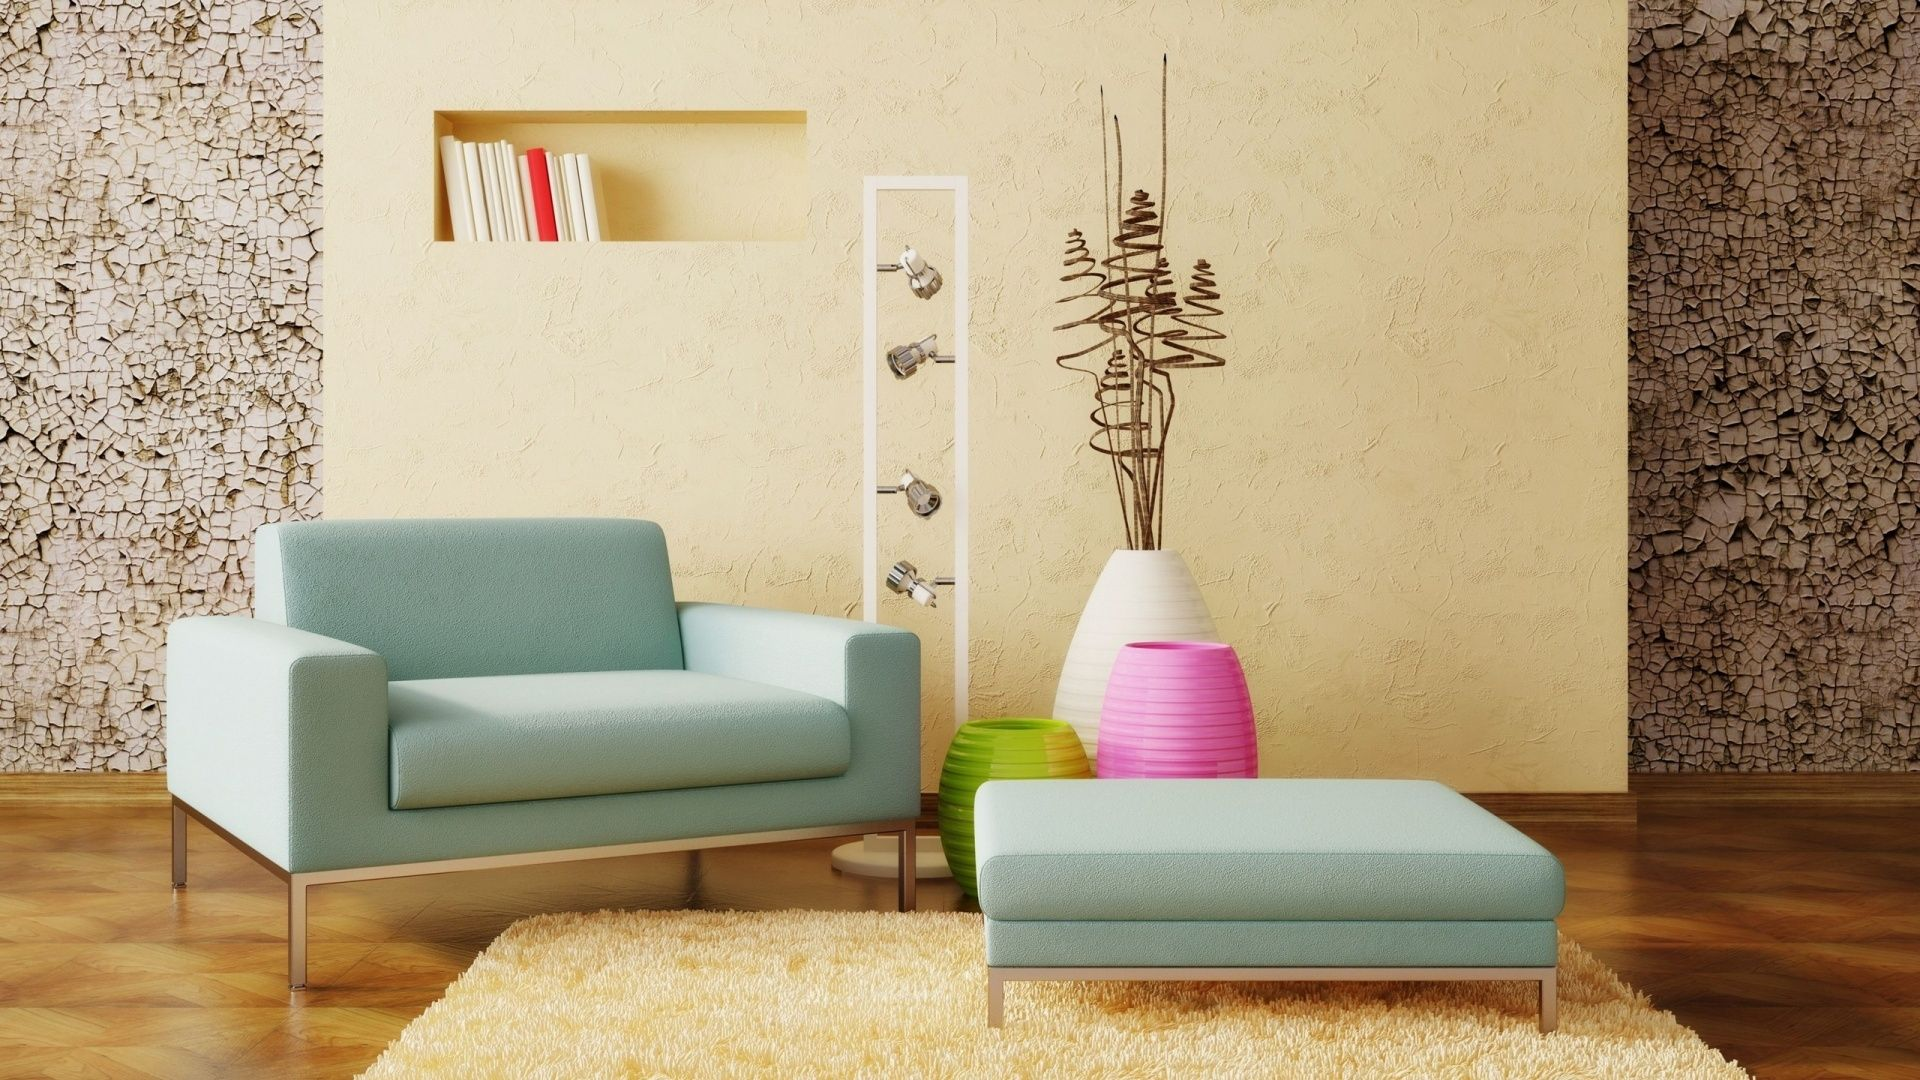 Make your decor easy and breezy with summertime touches | Decoration ...